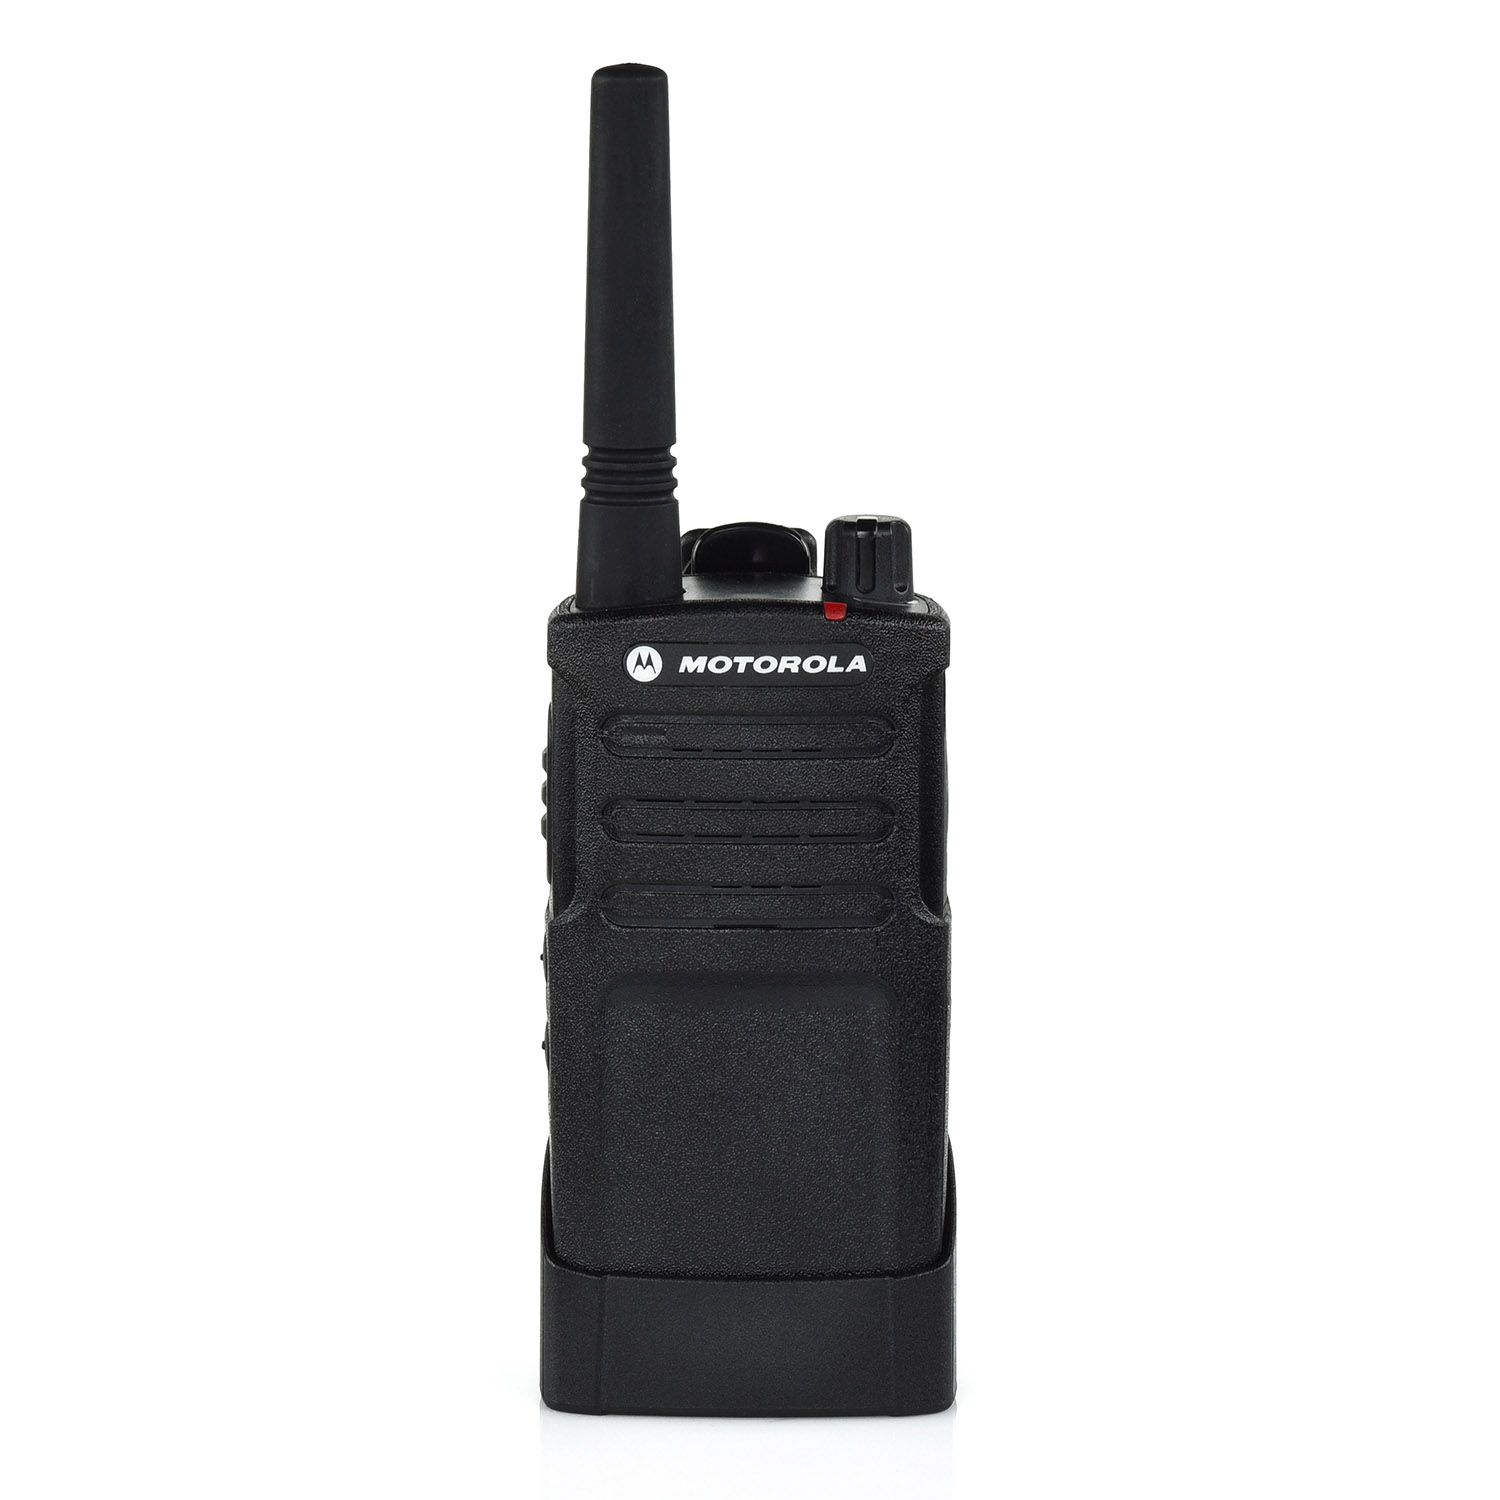 hight resolution of empower your team with a faster way to communicate the rmm2050 on site two way business radio helps you communicate instantly without missing a beat